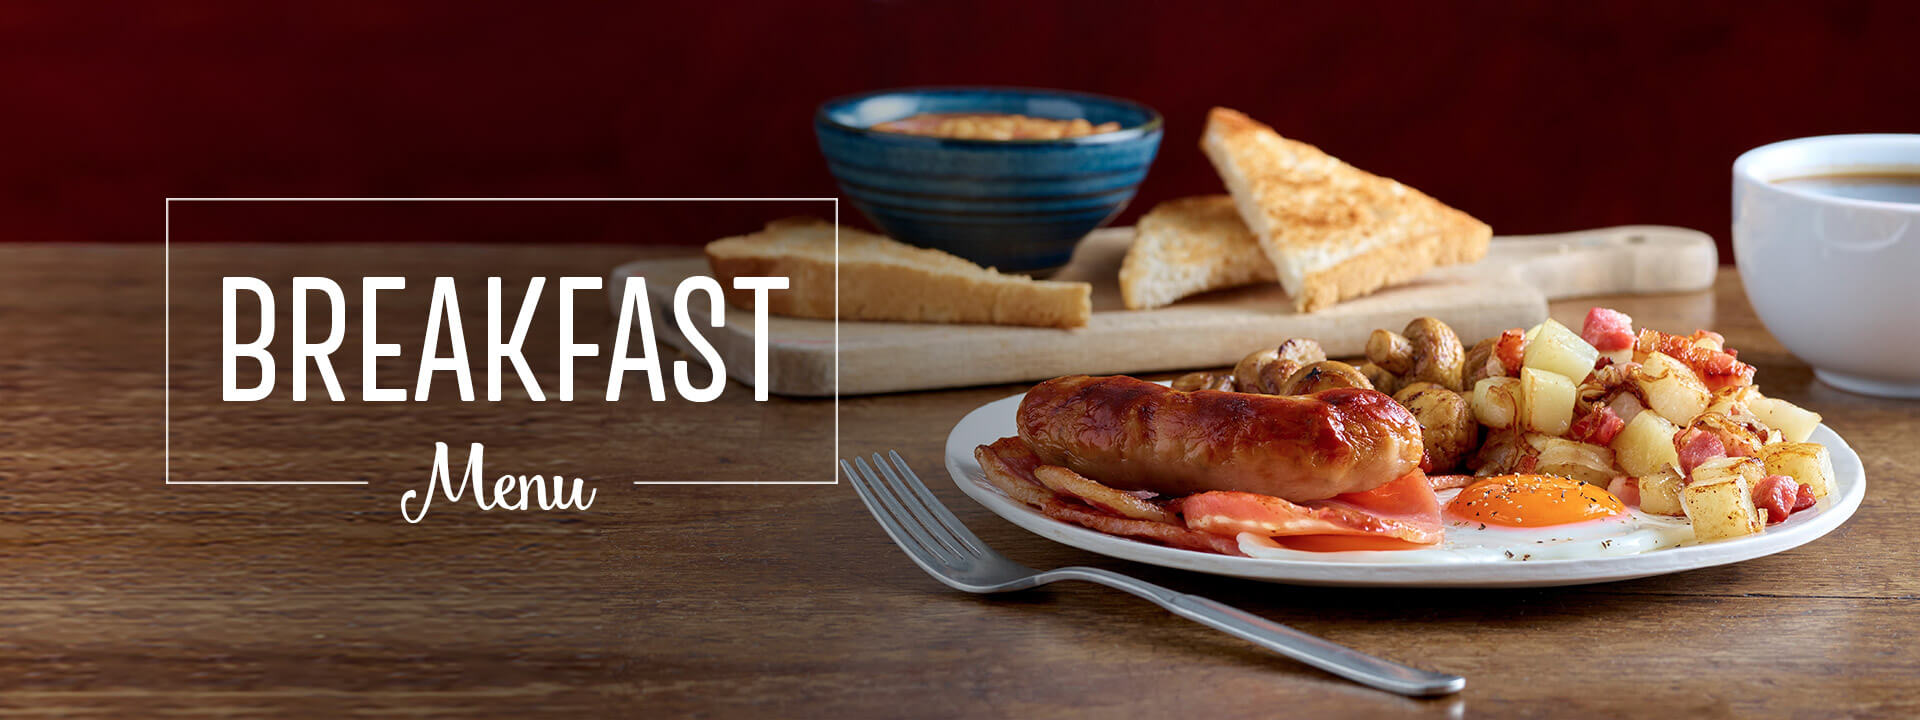 Breakfast at Toby Carvery Huddersfield - Book Now